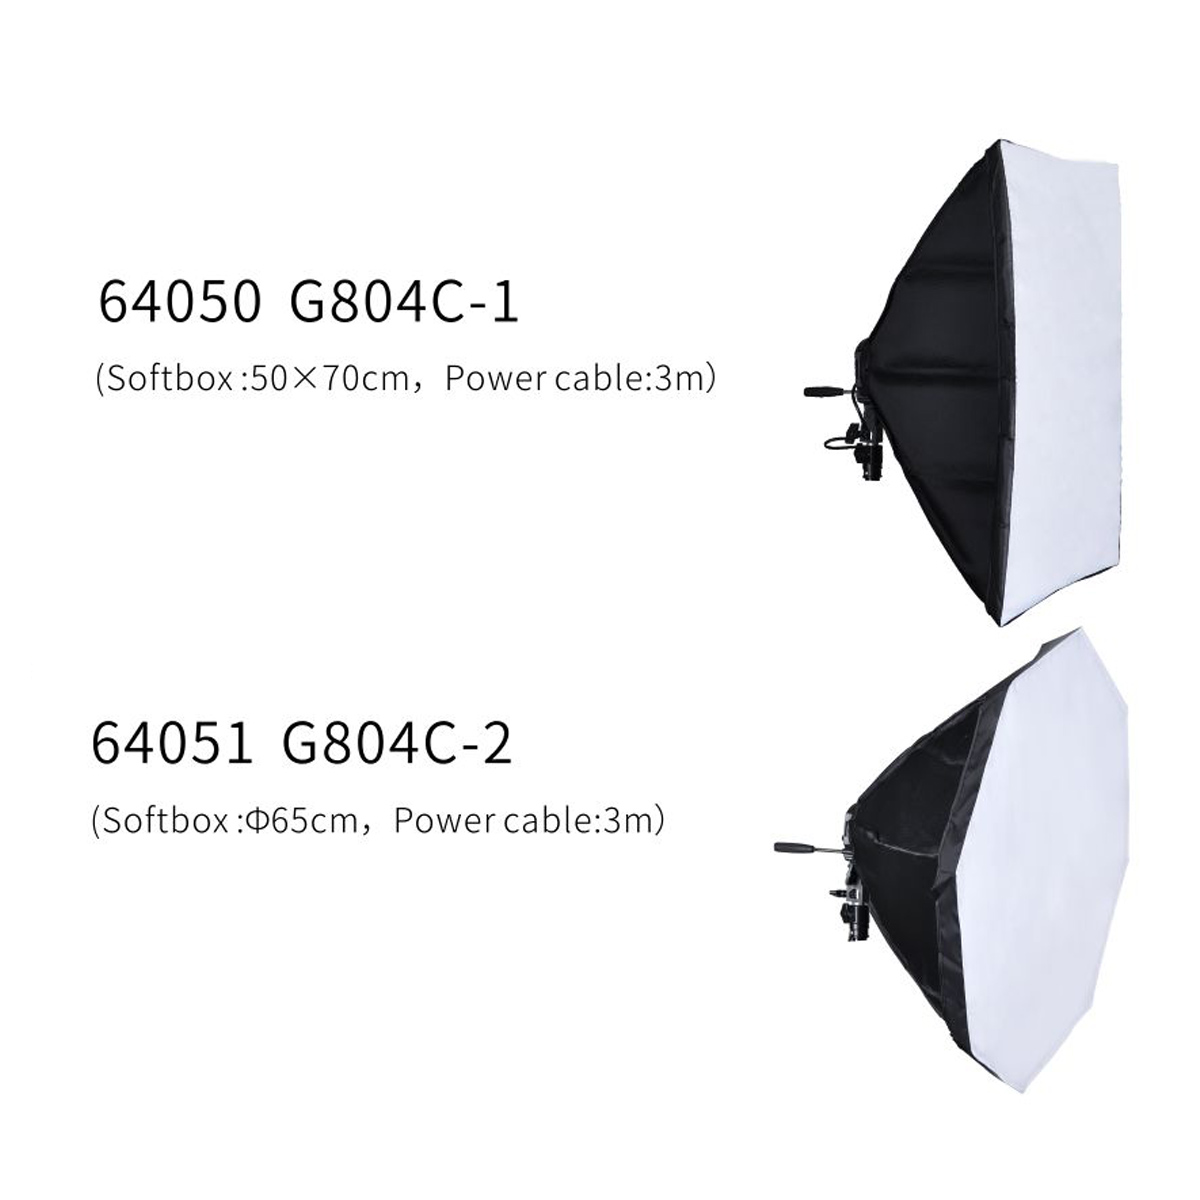 Nicefoto Digital Light Kits  KT-1301 50x70cm Softbox + Light Stand LS-220A + E27 Daylight Bulb 36W for Studio Photography Continuous Lighting Professional Lighting